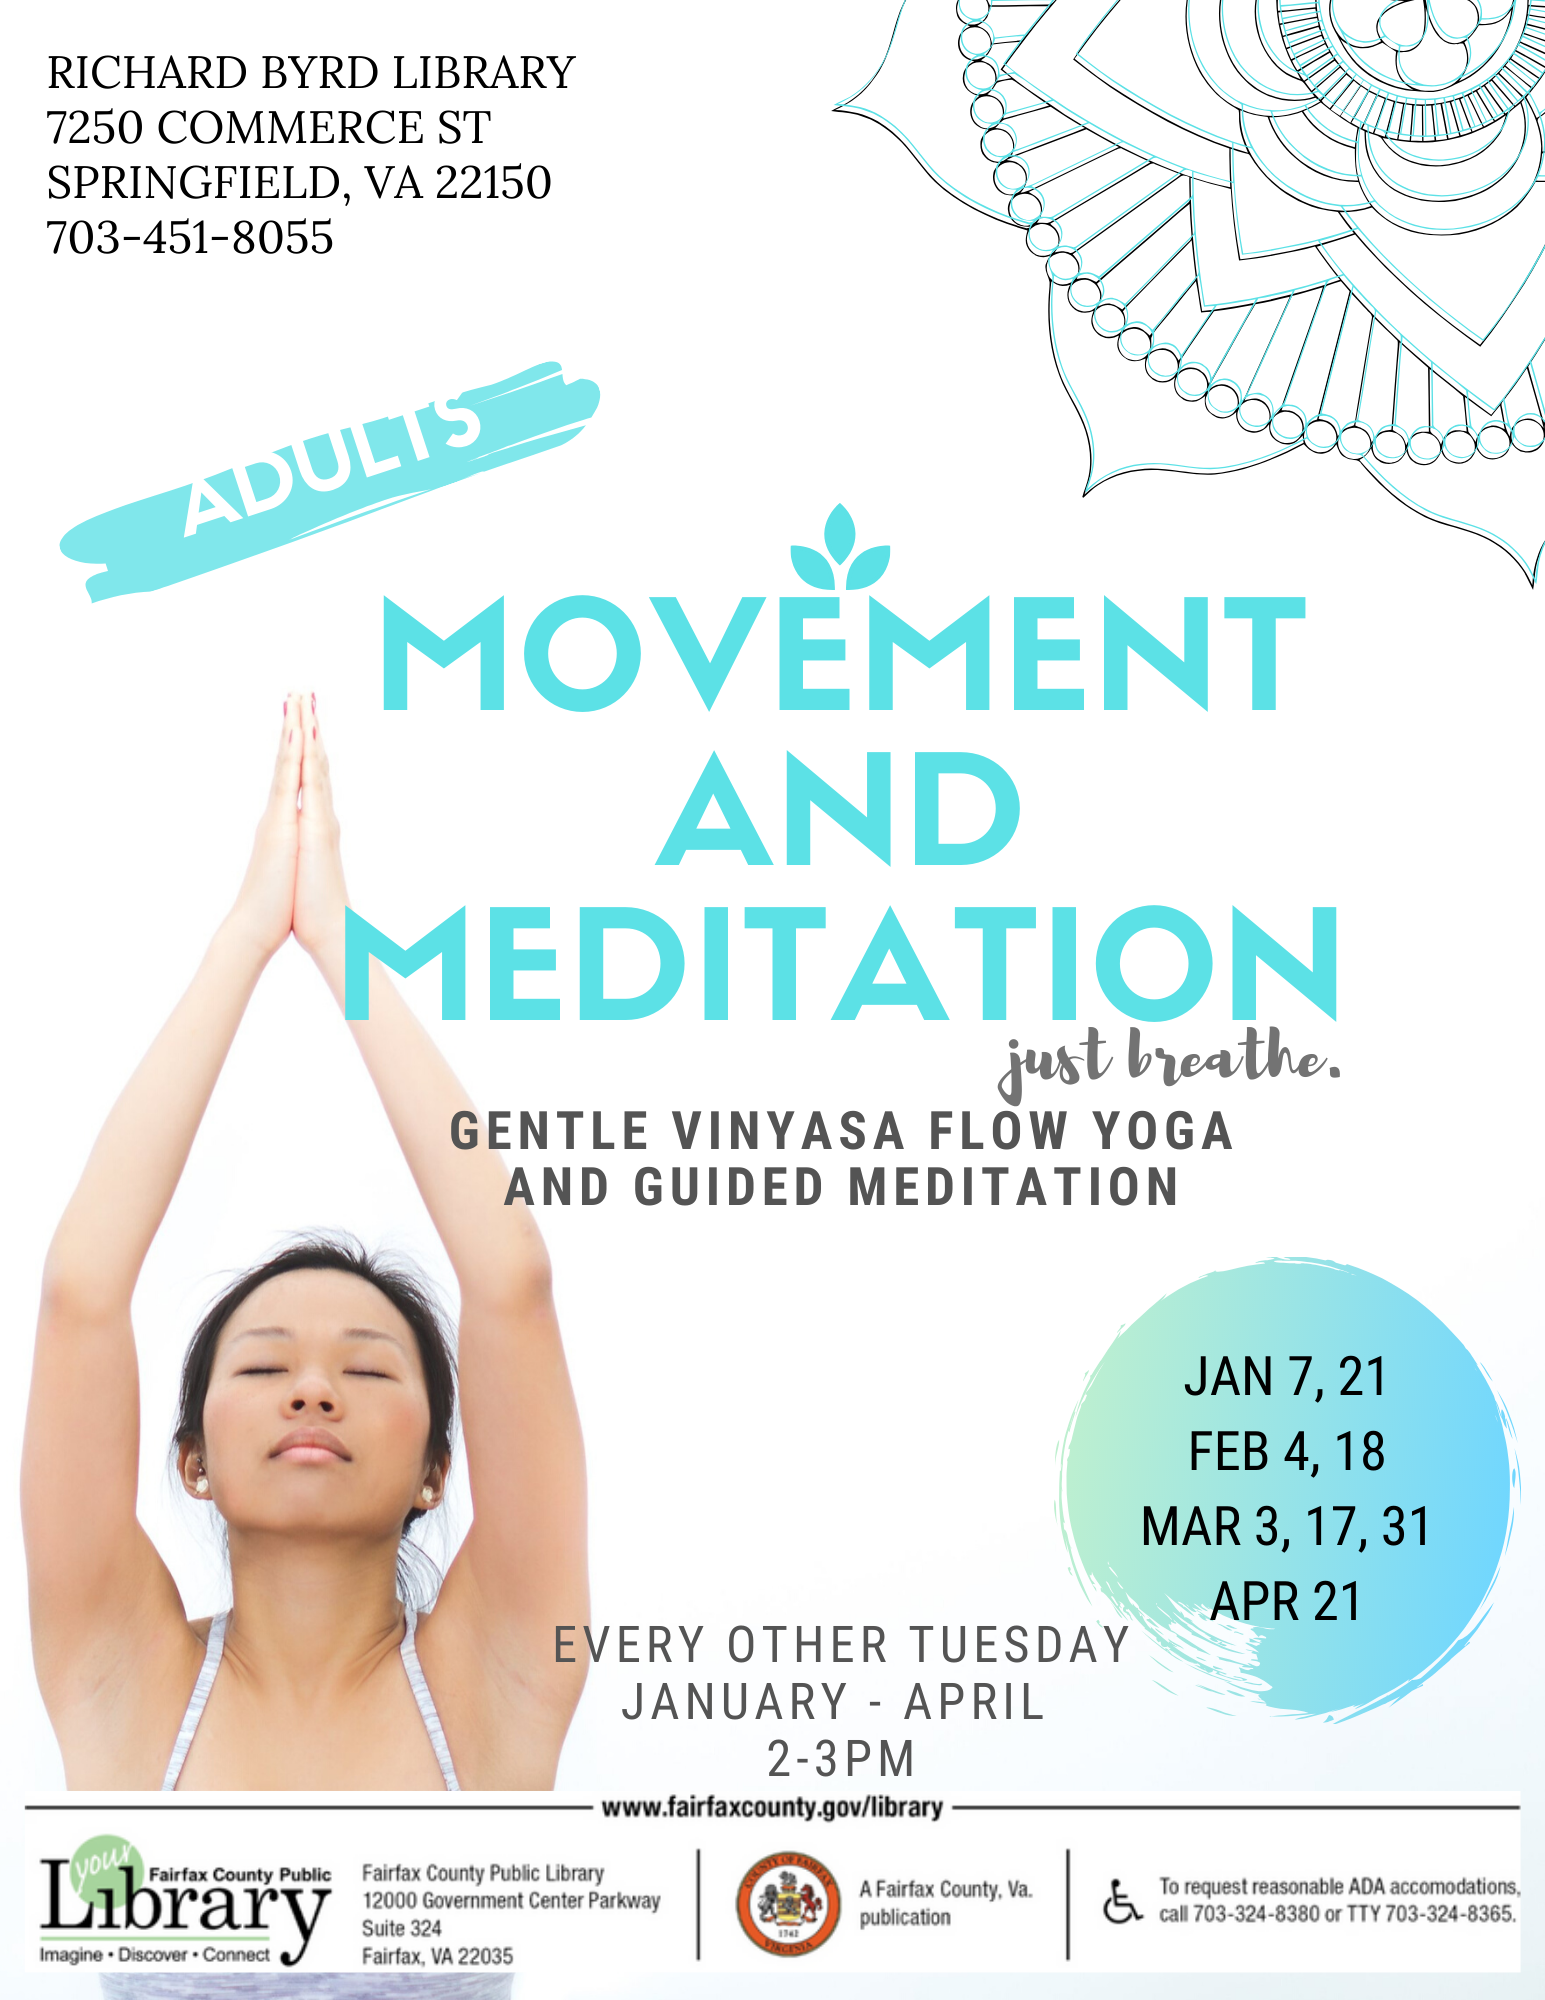 Movement and Meditation Yoga